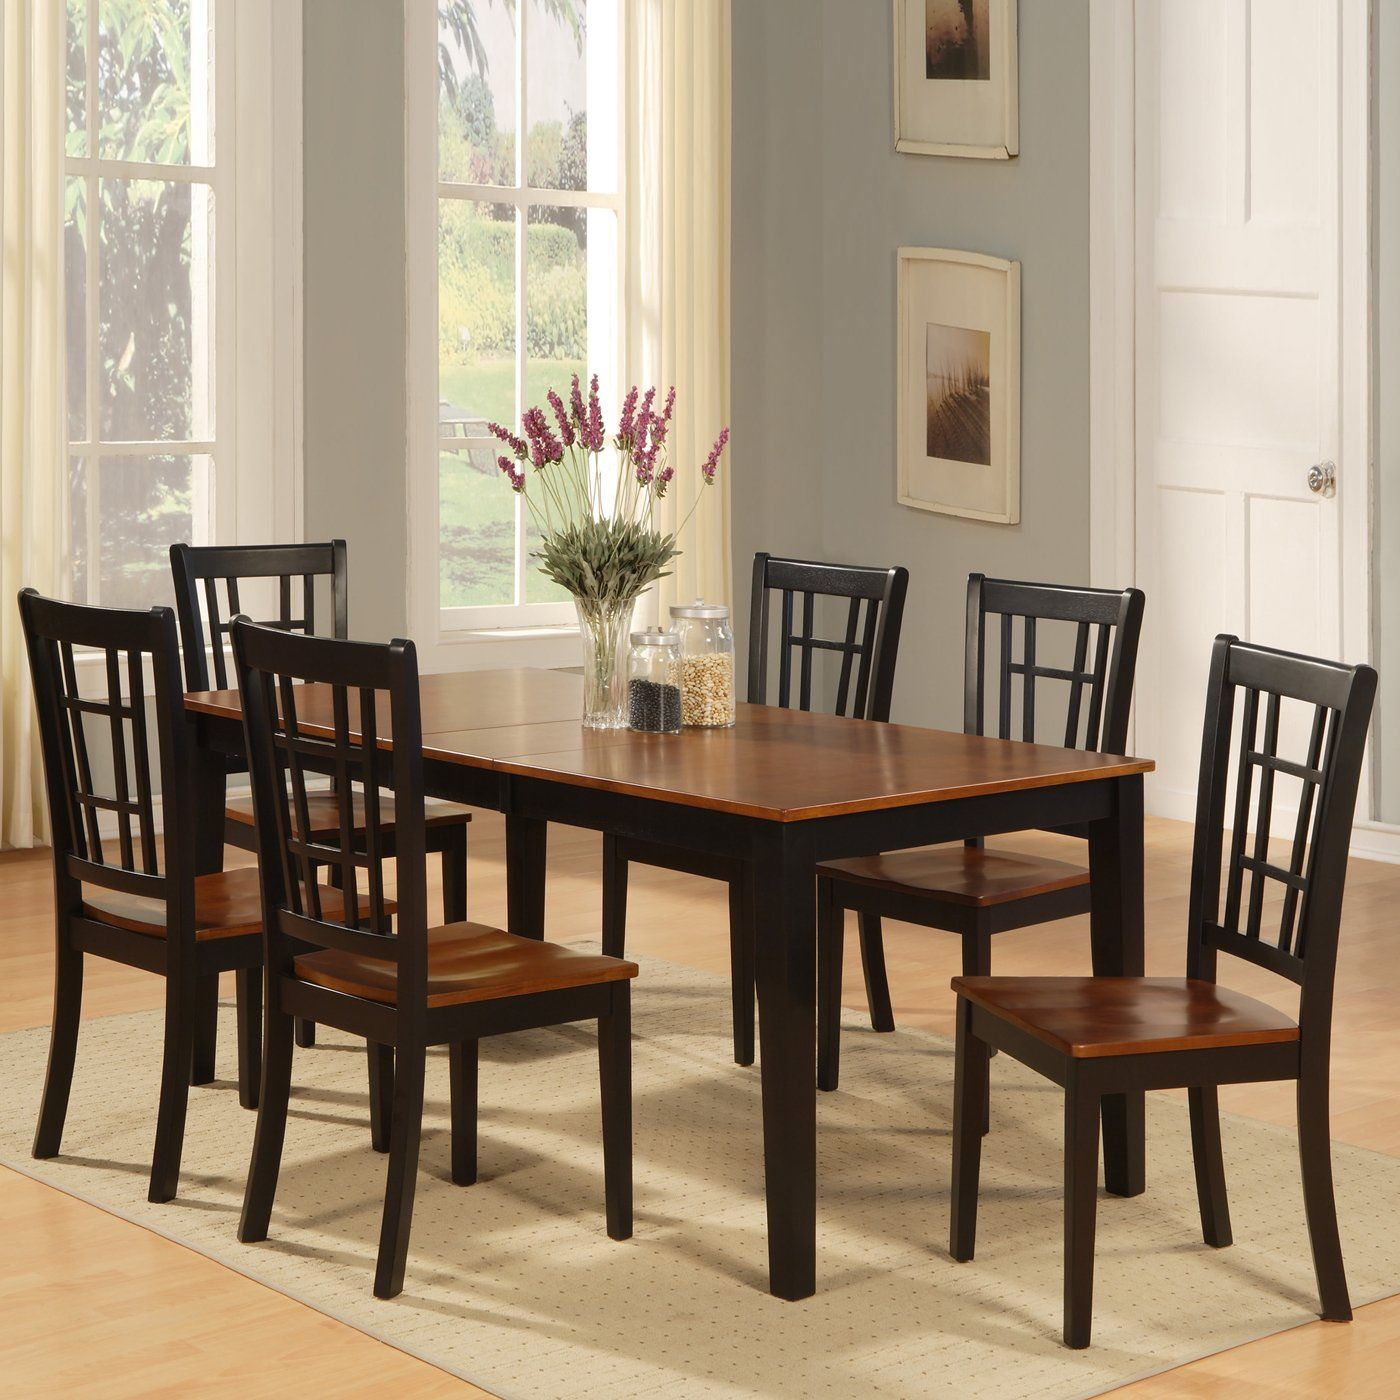 East west furniture nicoli rectangular table dining set for our